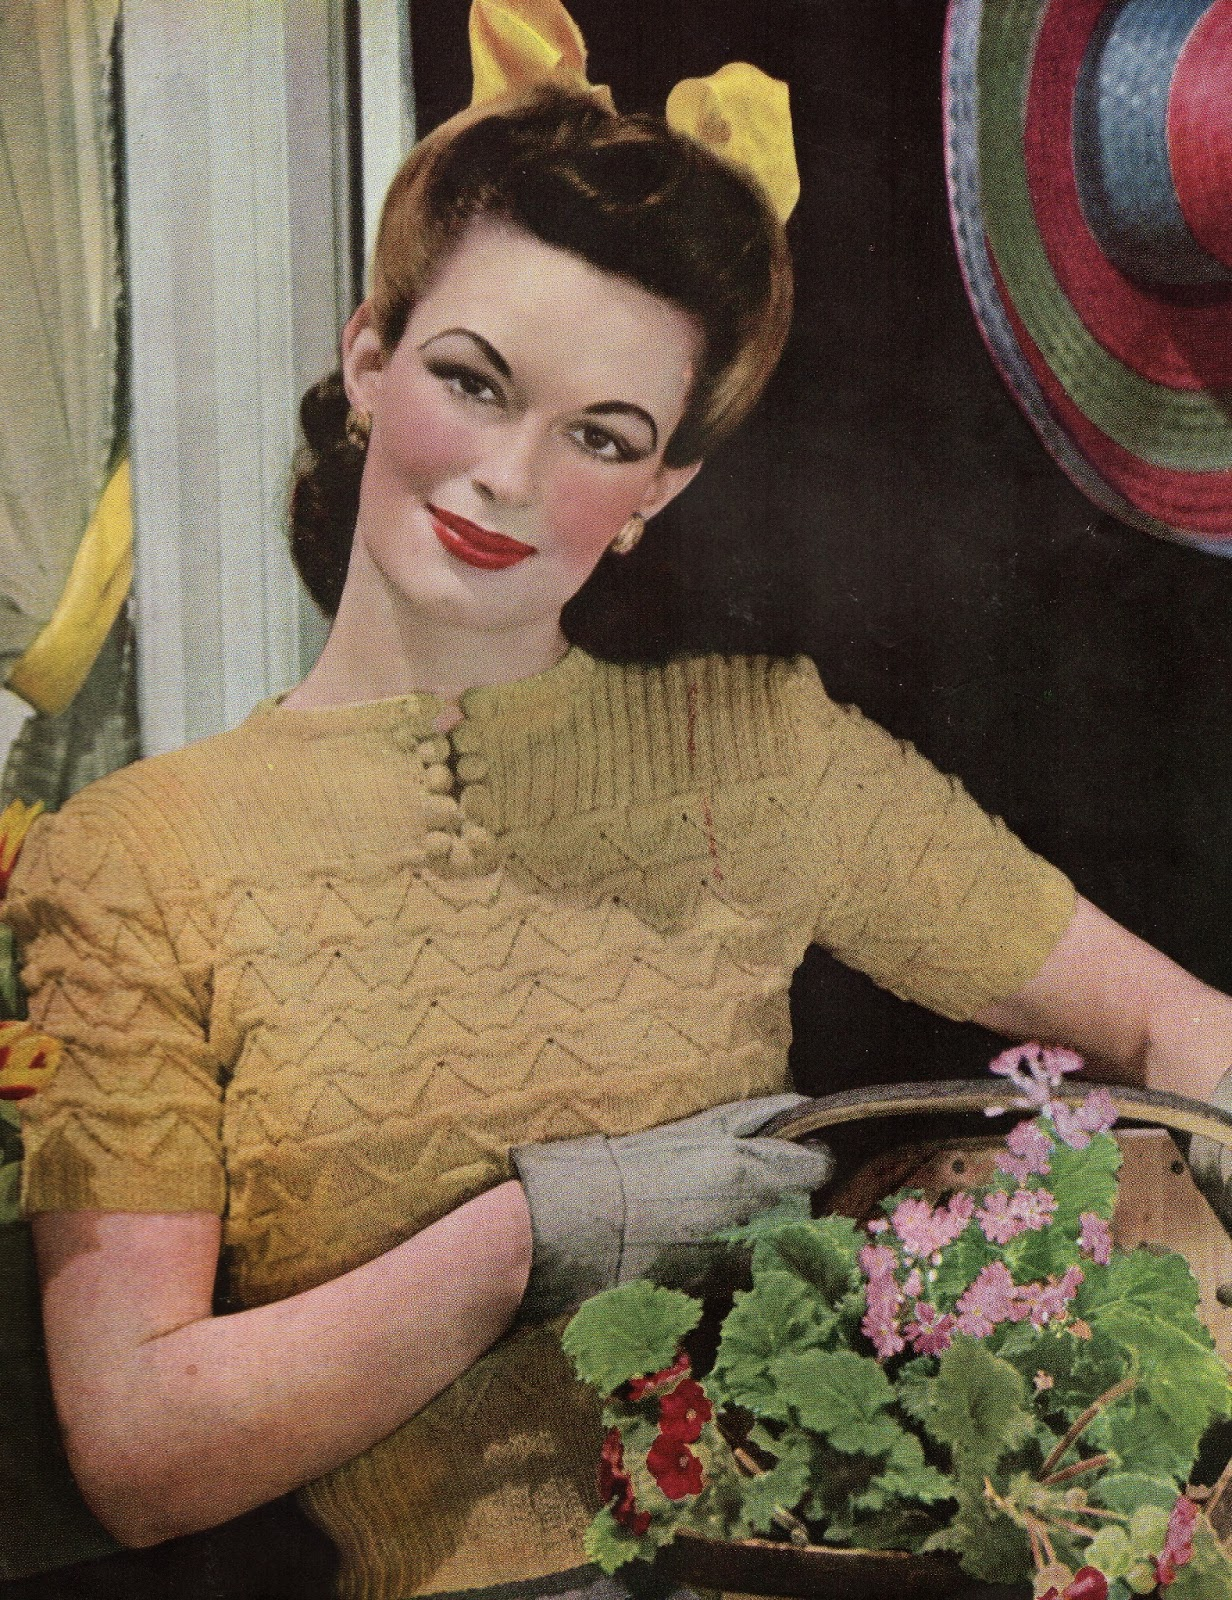 1940 Knitting Patterns Free : 1940s Style For You: Free Knitting Pattern - 1940s Jumper - Stitchc...